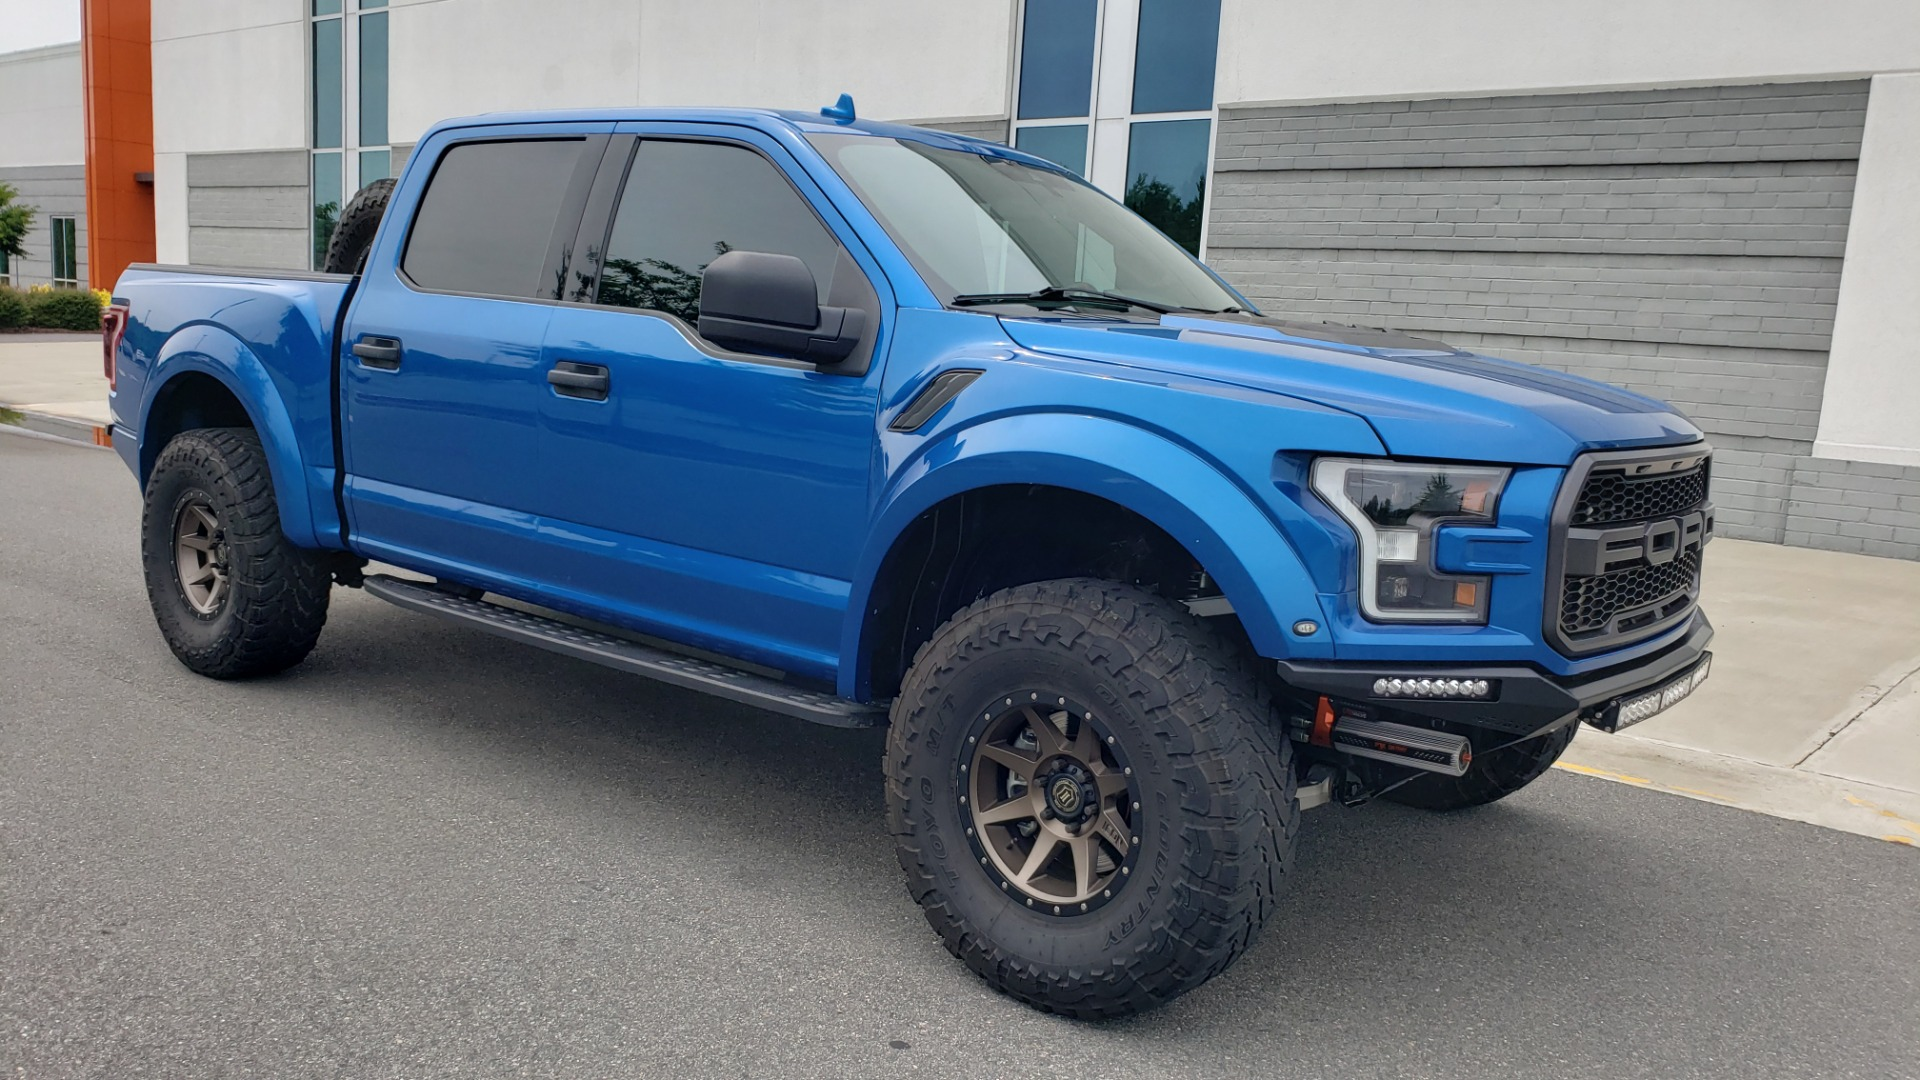 Used 2019 Ford F-150 RAPTOR 4X4 / CREWCAB / PRE-RUNNER CUSTOM SUSPENSION for sale $79,999 at Formula Imports in Charlotte NC 28227 9